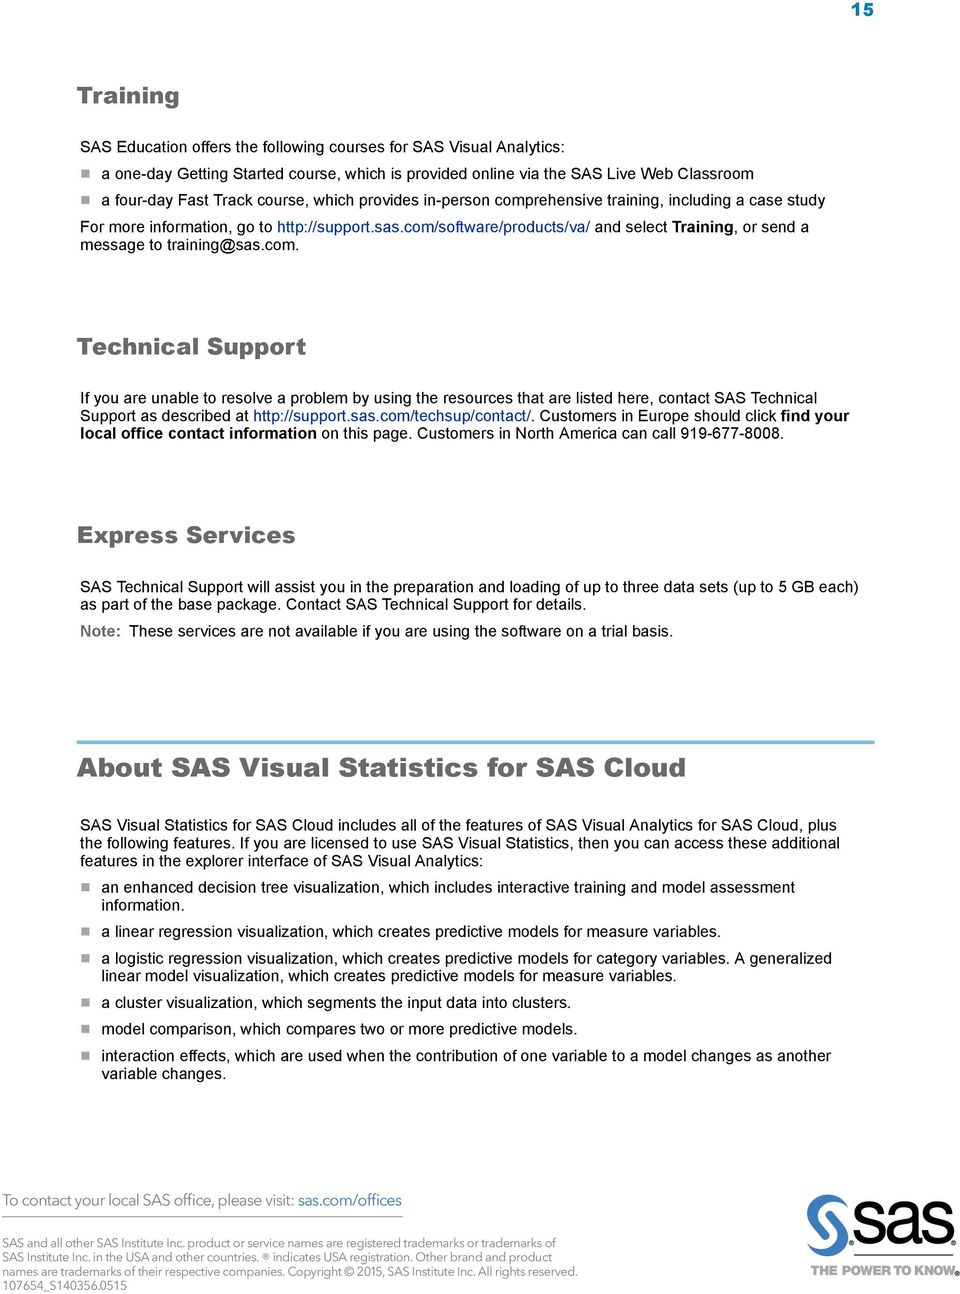 com/software/products/va/ and select Training, or send a message to training@sas.com. Technical Support If you are unable to resolve a problem by using the resources that are listed here, contact SAS Technical Support as described at http://support.